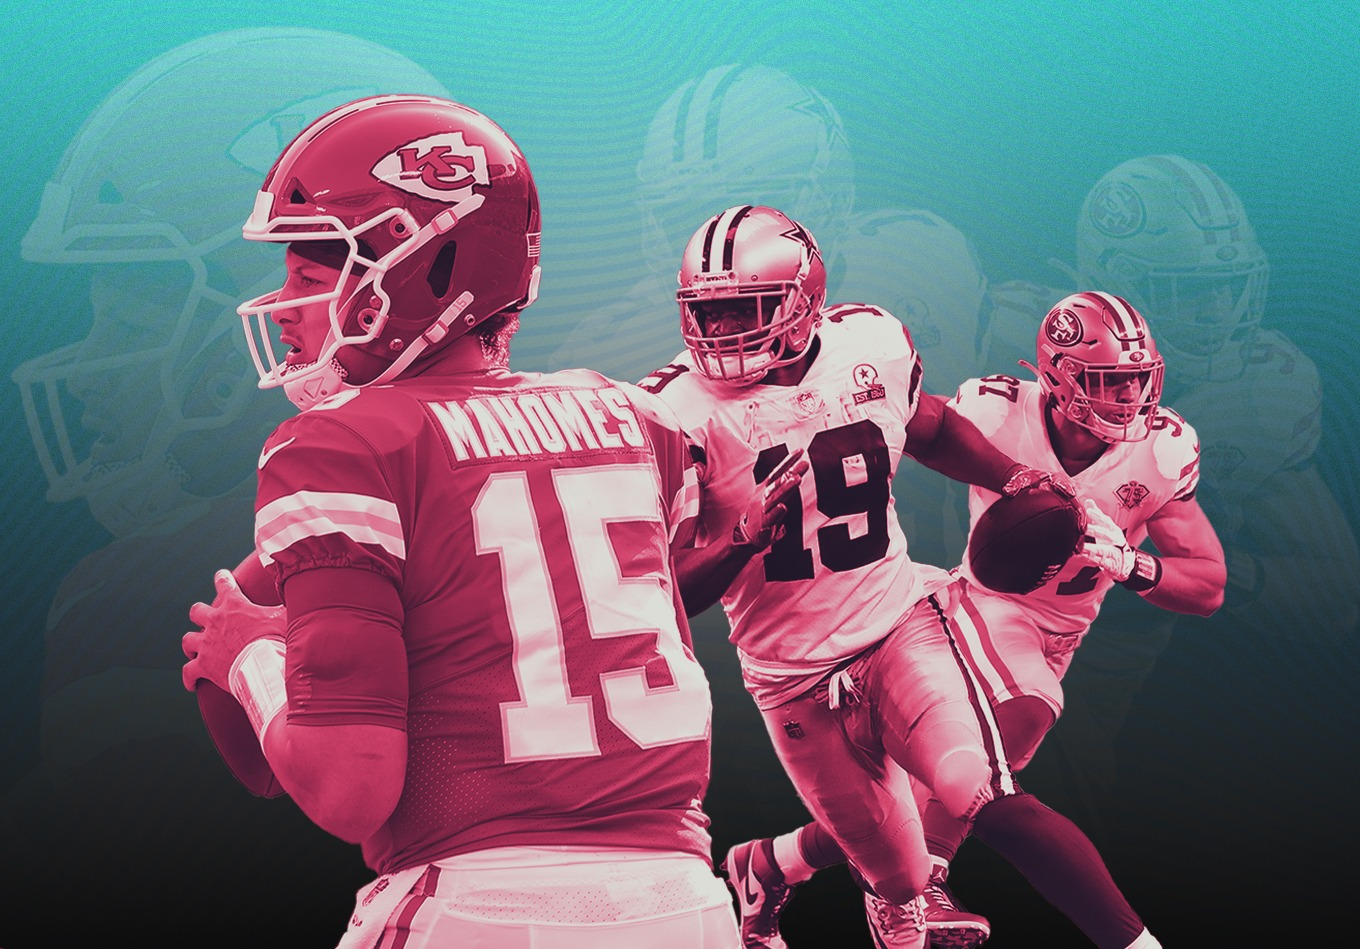 Cover 3: The Must-See Matchups of the NFL's Week 2